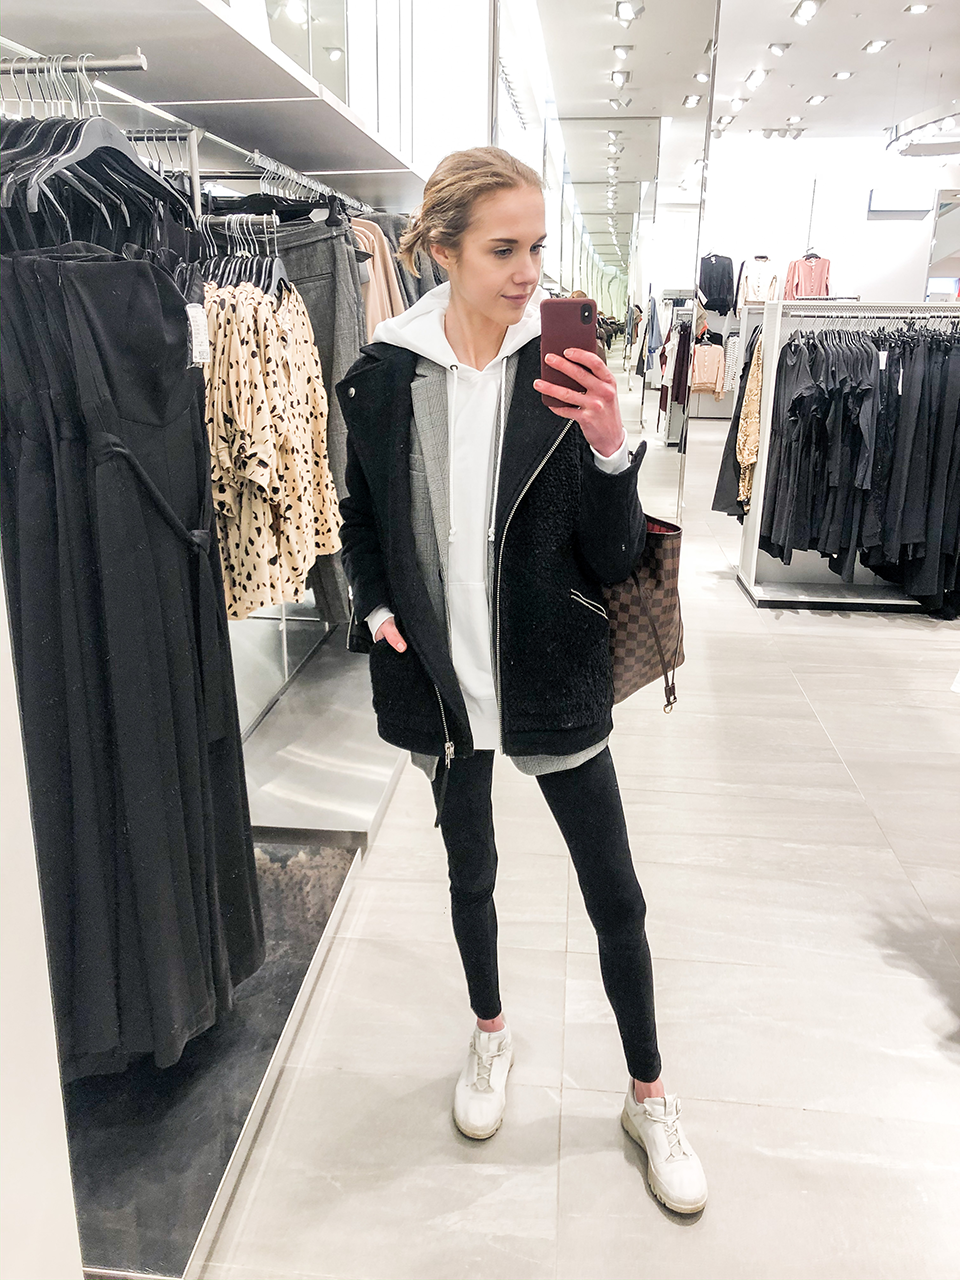 Athleisure outfit with leggings and hoodie - Sporttinen asu leggingsien ja hupparin kanssa